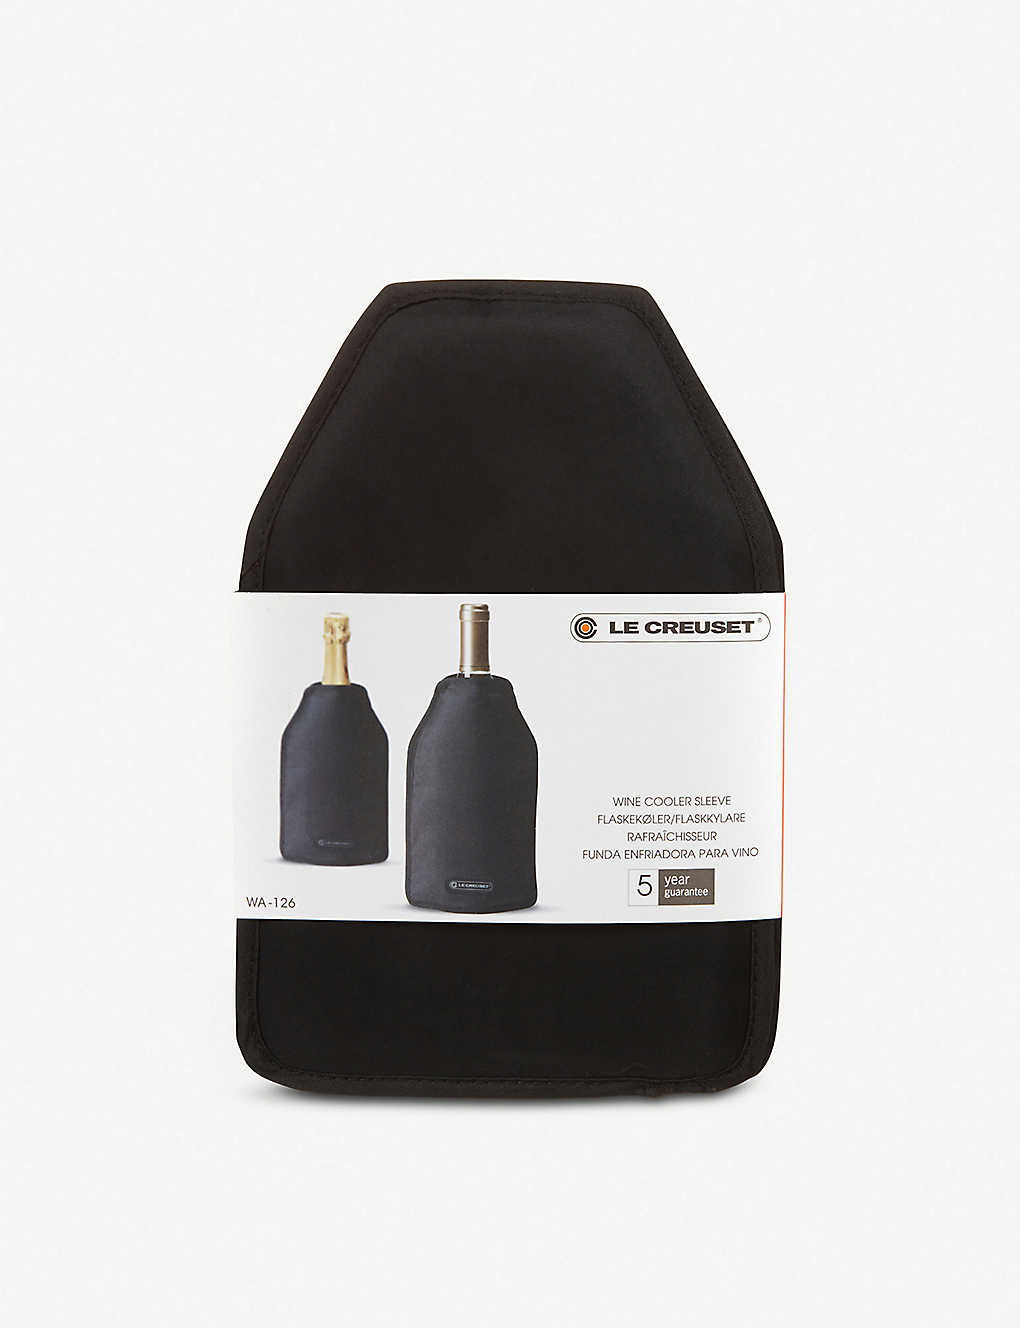 LE CREUSET: Wine cooler sleeve